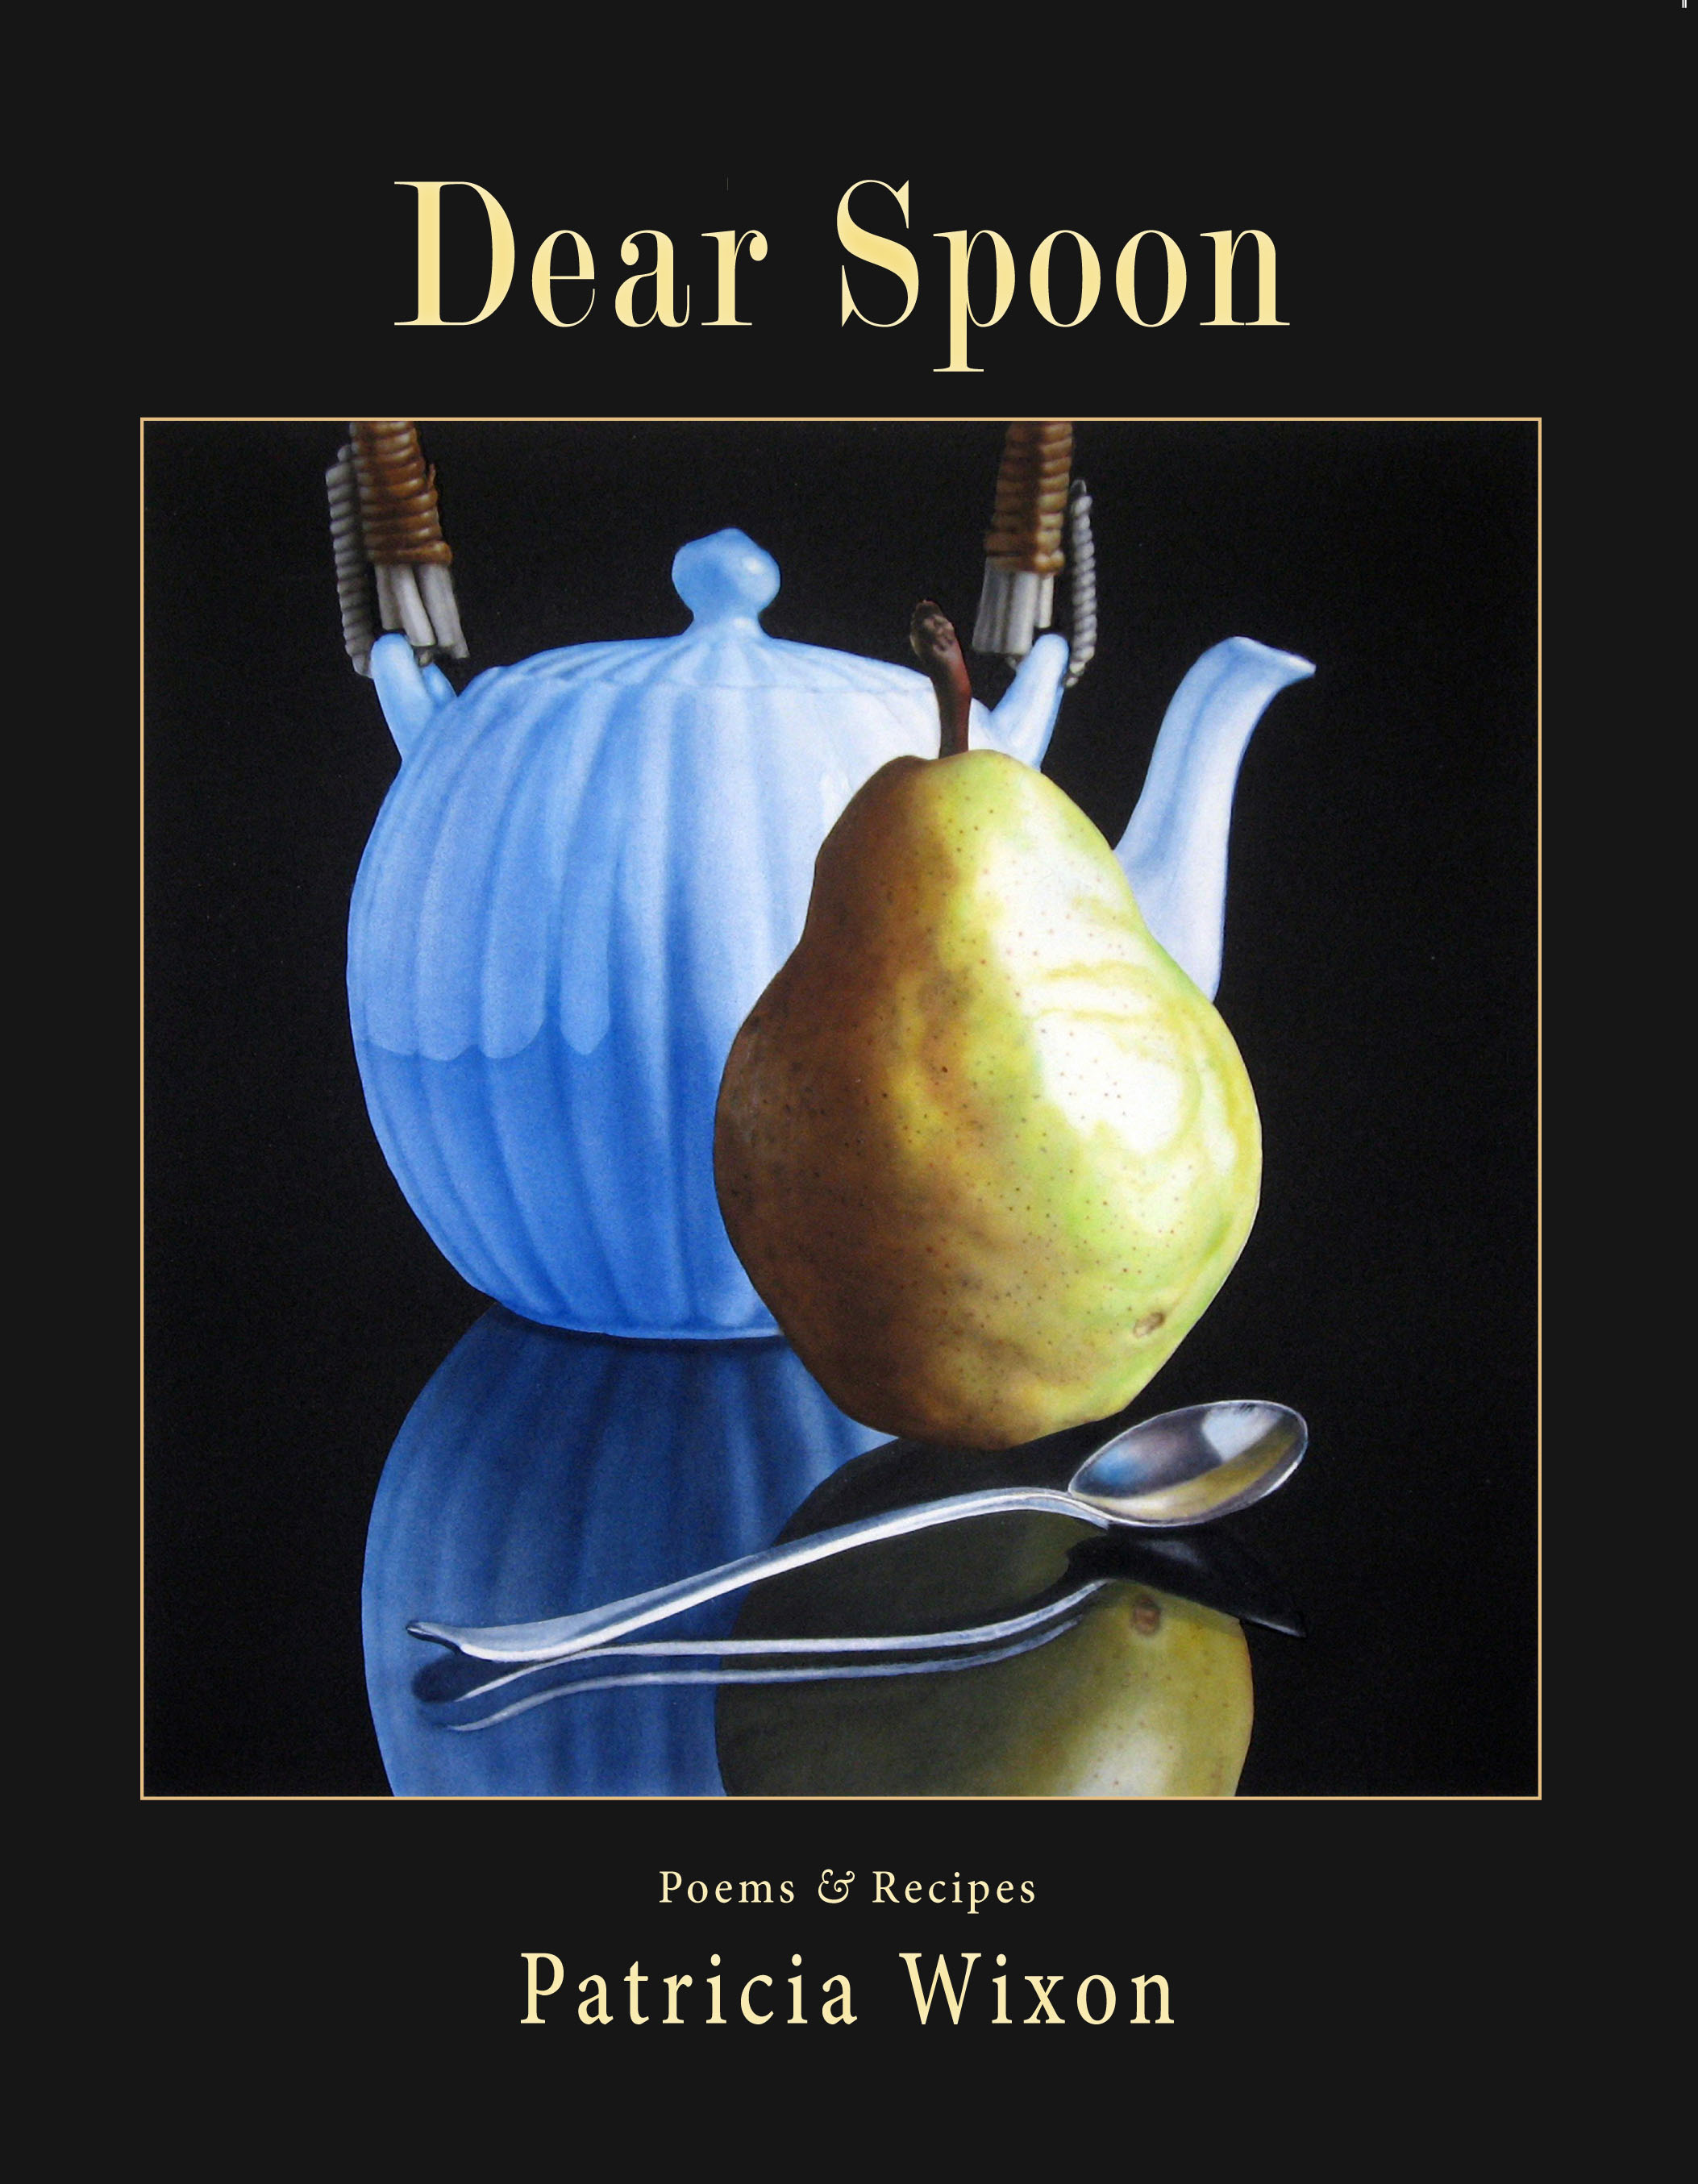 Dear Spoon Front CVR FINAL.jpg